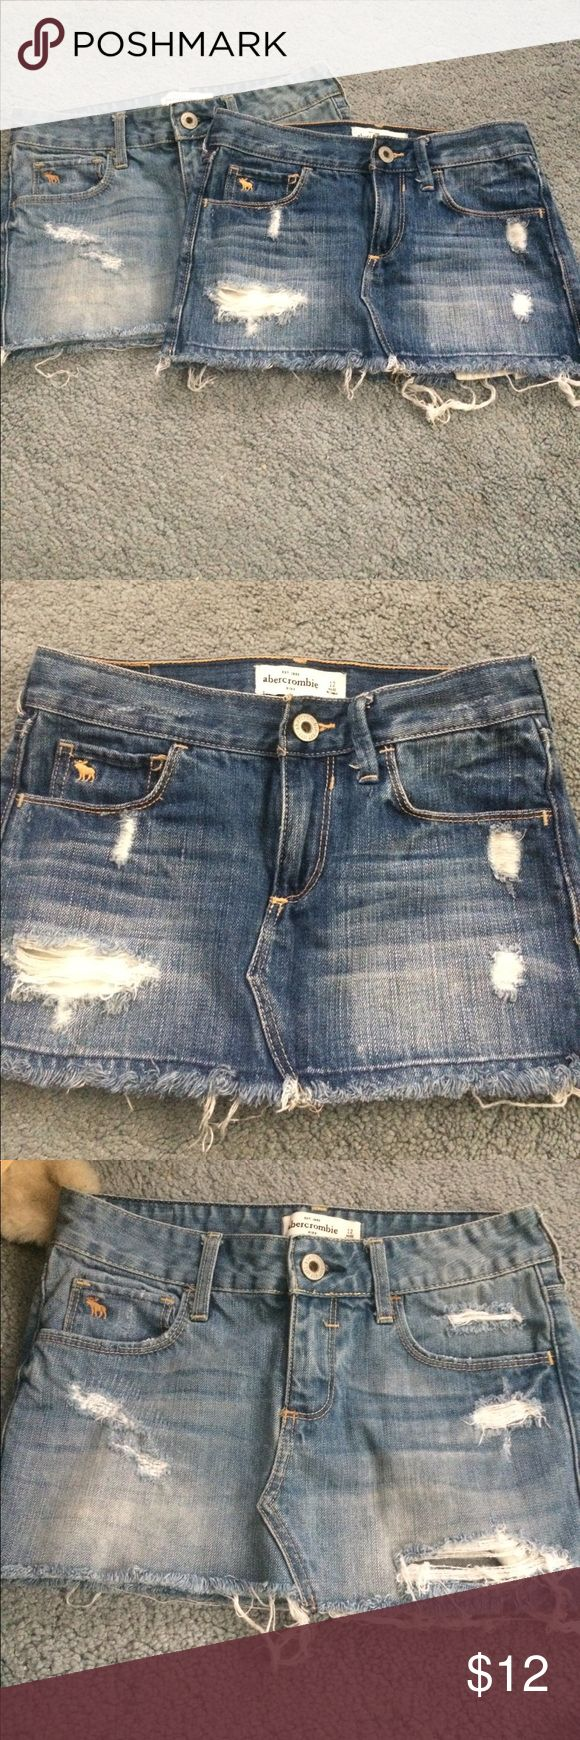 Abercrombie kids jean skirts 12 2 Abercrombie distressed jean skirts kids size 12 only worn a couple times abercrombie kids Bottoms Skirts